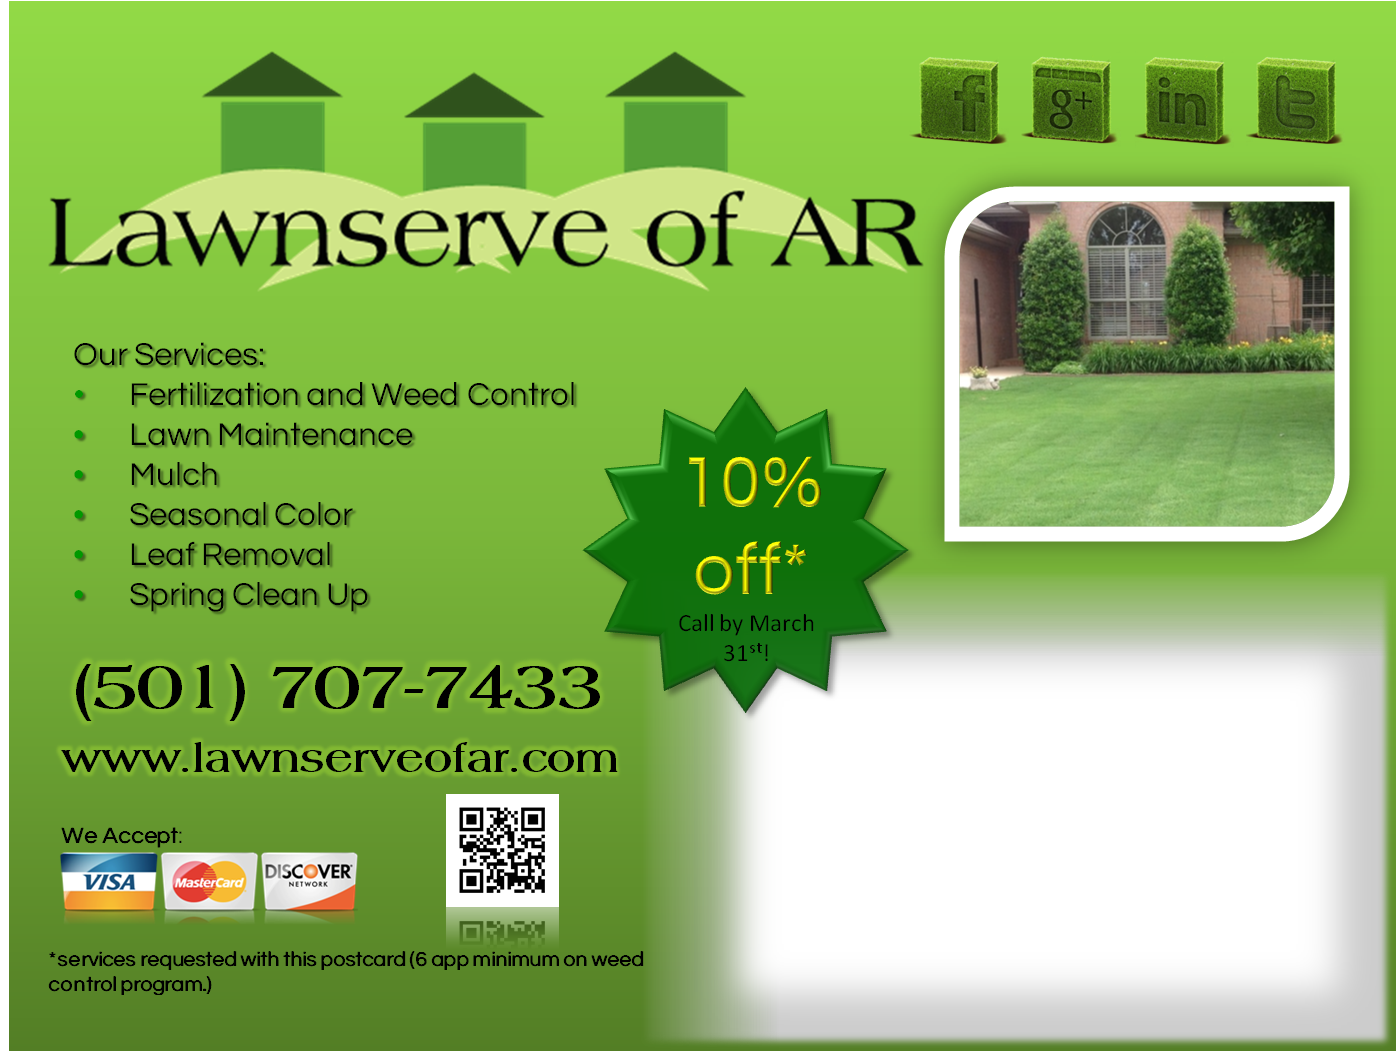 Lawnserve of AR-Fertilization and Weed Control, Lawn and Landscape Services- Mow, Edge, Blow, Mulch, Shrub Trimming, Seasonal Flowers, Spring Clean Up